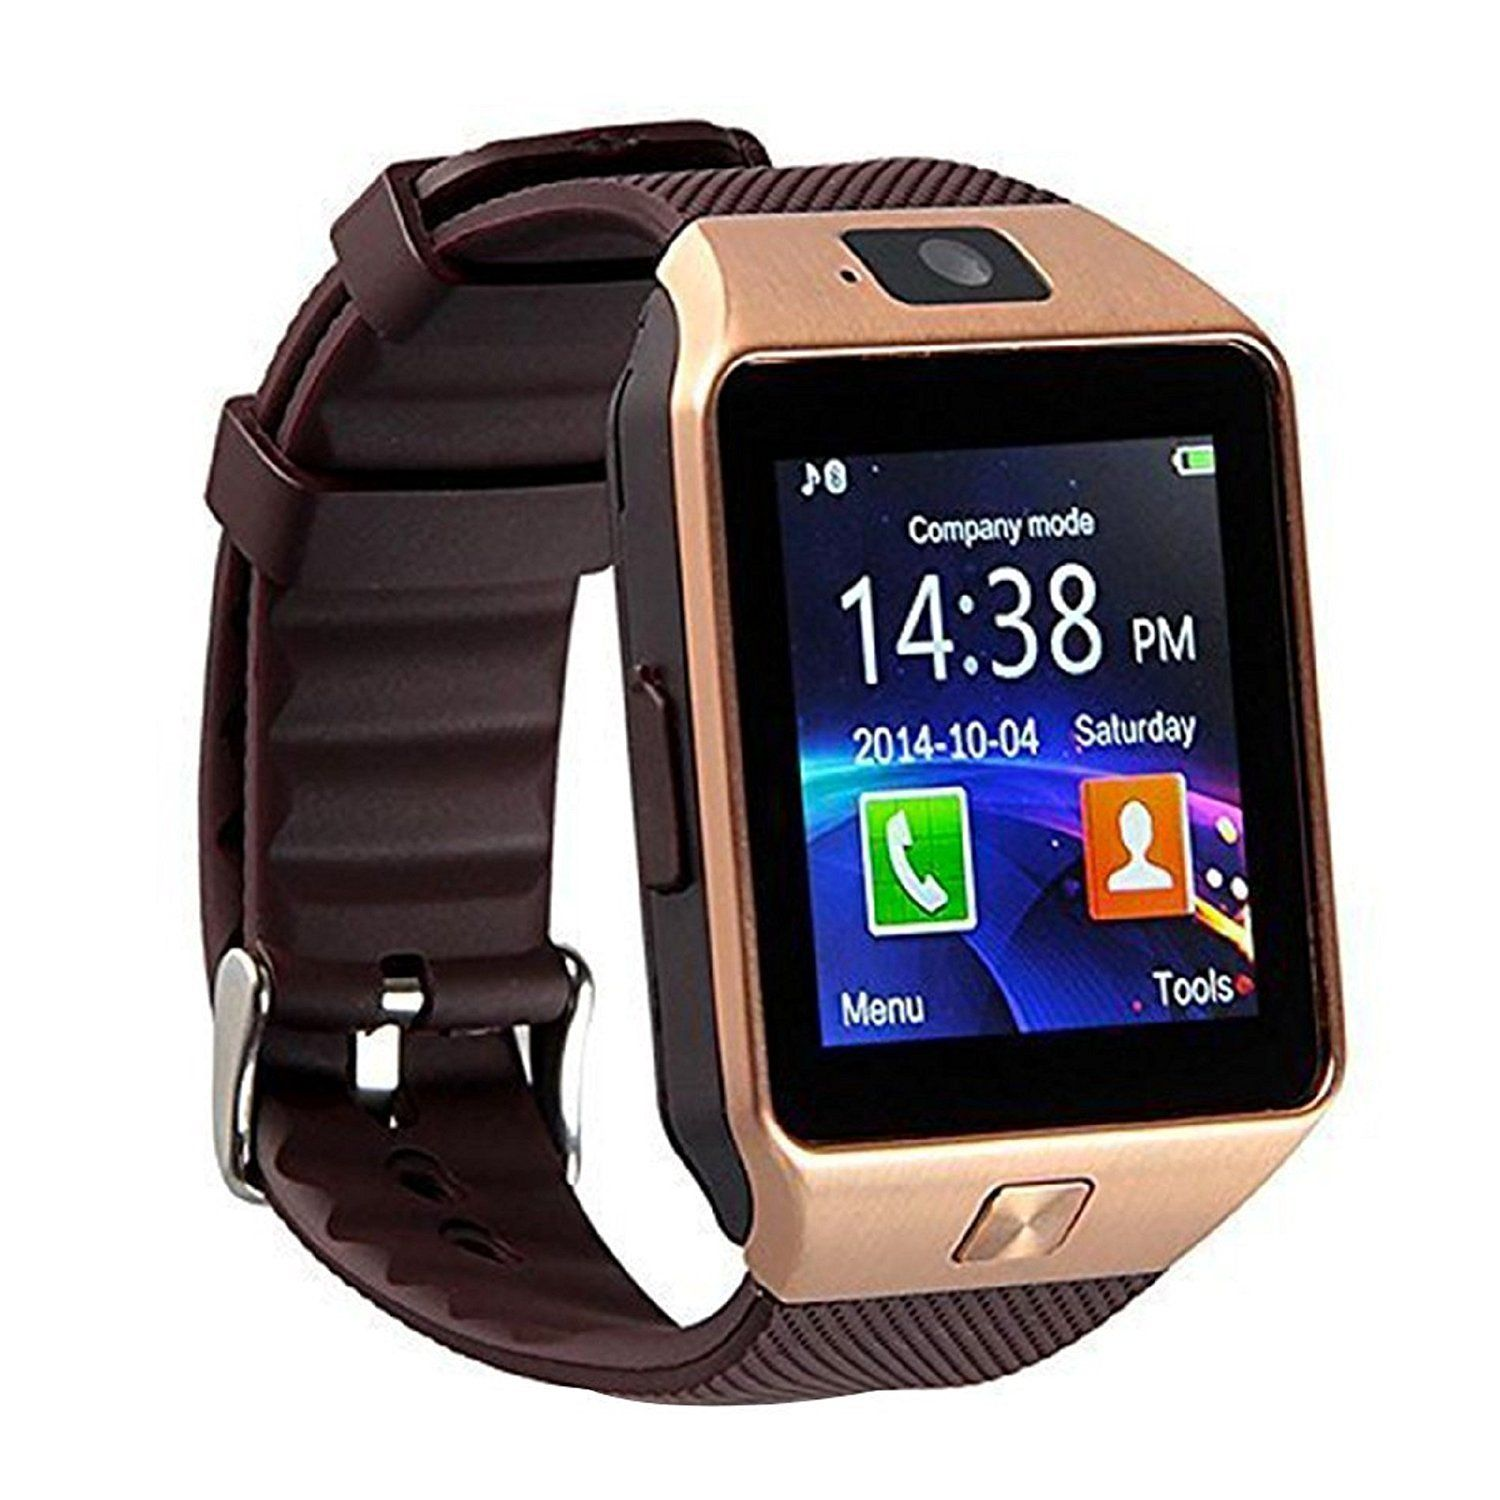 YOMY DZ09 Bluetooth Smart Watch Touch Screen Smart Wrist Watch Phone Support SIM TF Card With Camera Pedometer Activity Tracker for Iphone IOS Samsung